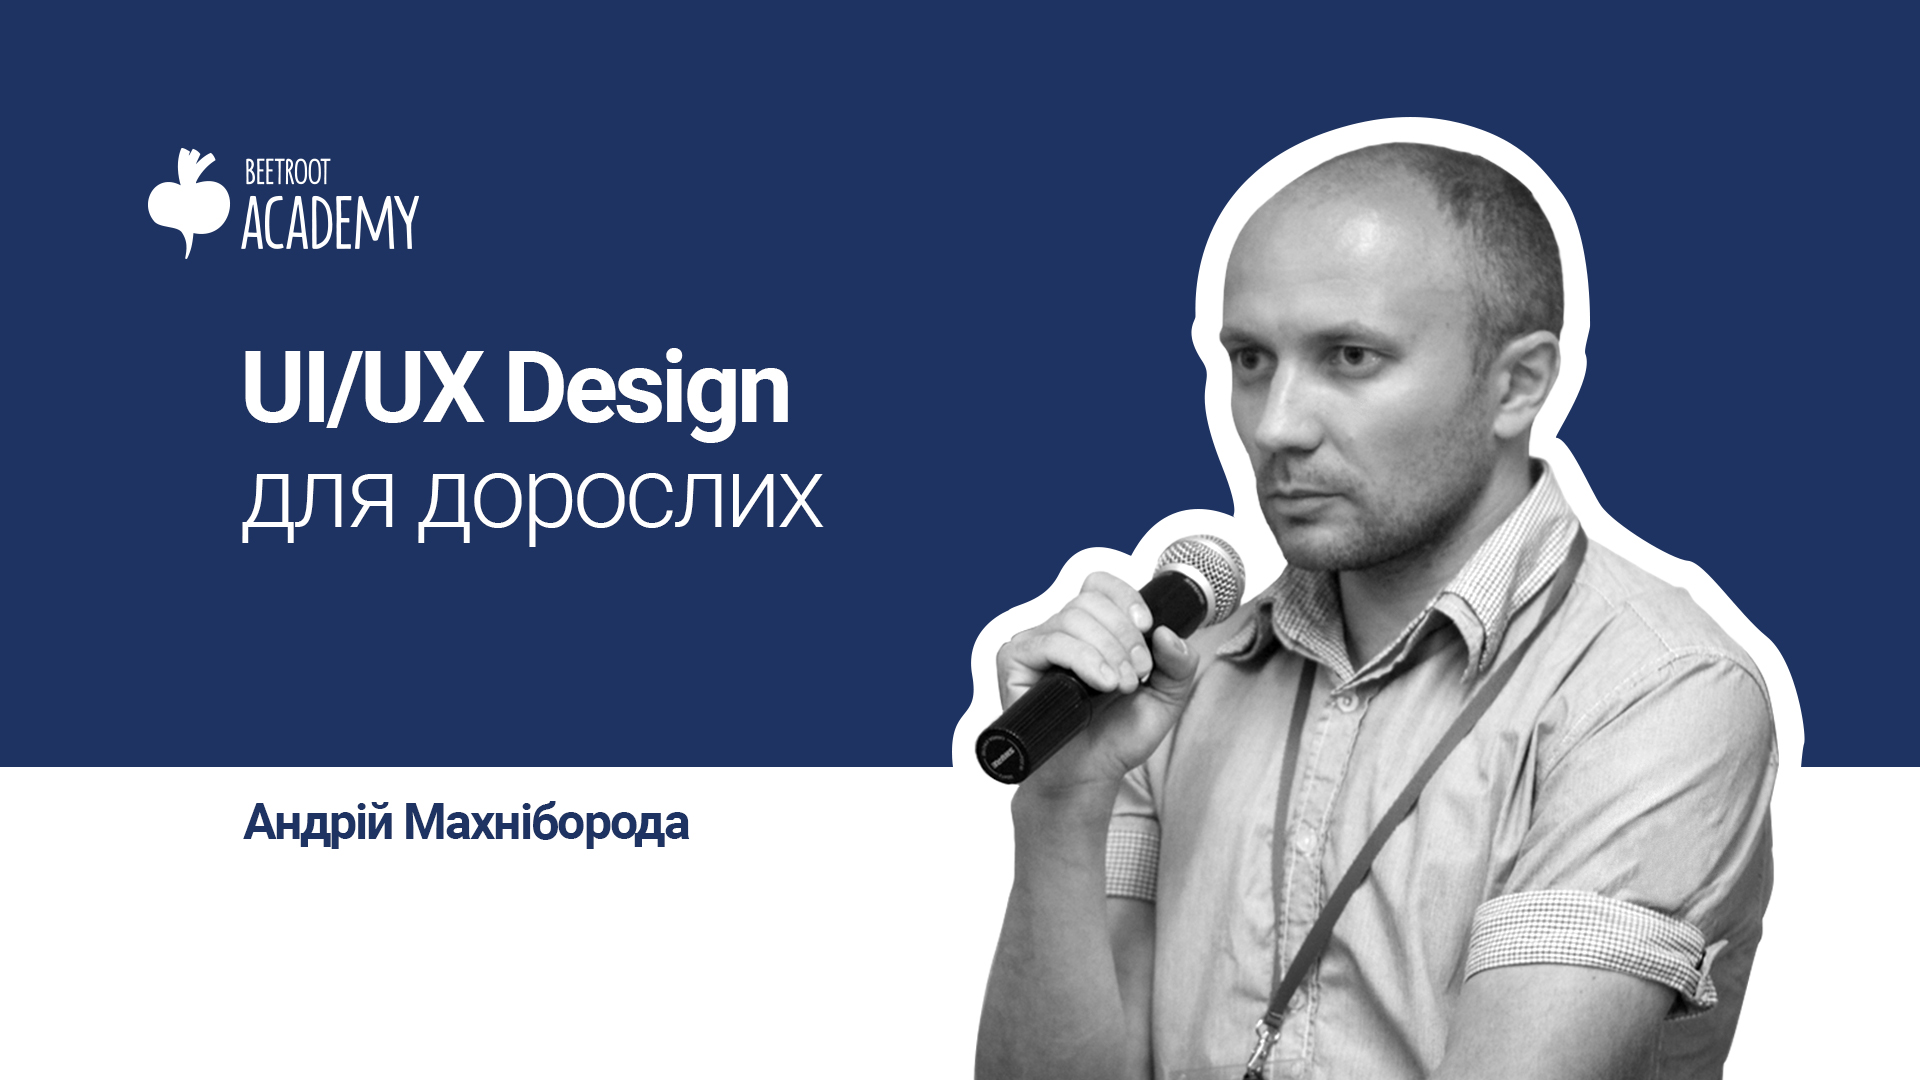 Презентація курсу UI/UX Design для дорослих